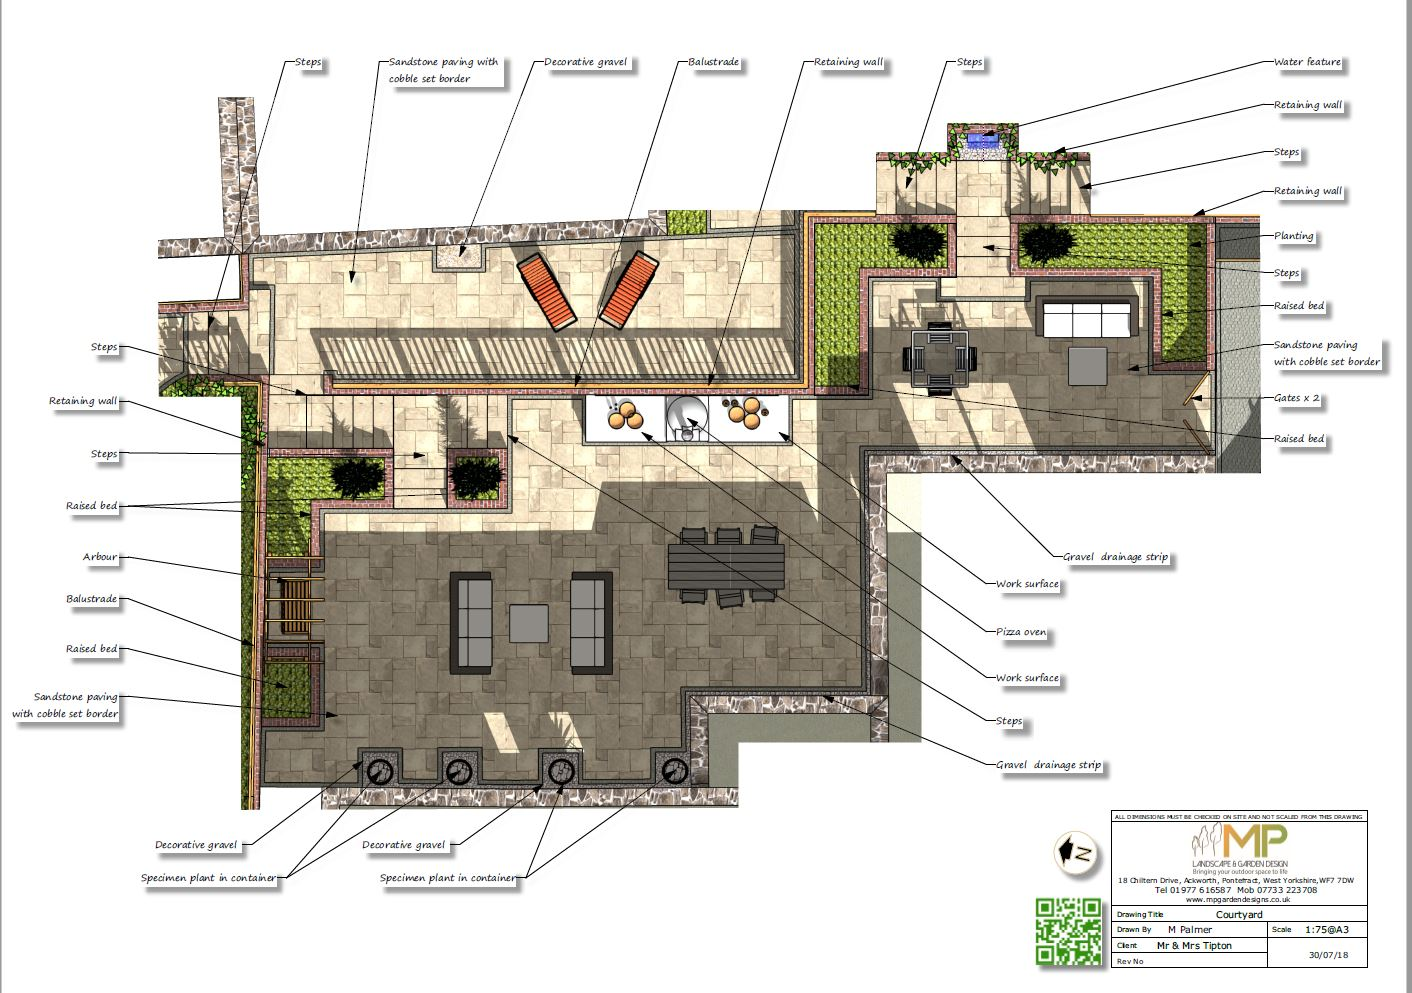 Courtyard layout plans for a property in Pontefract.